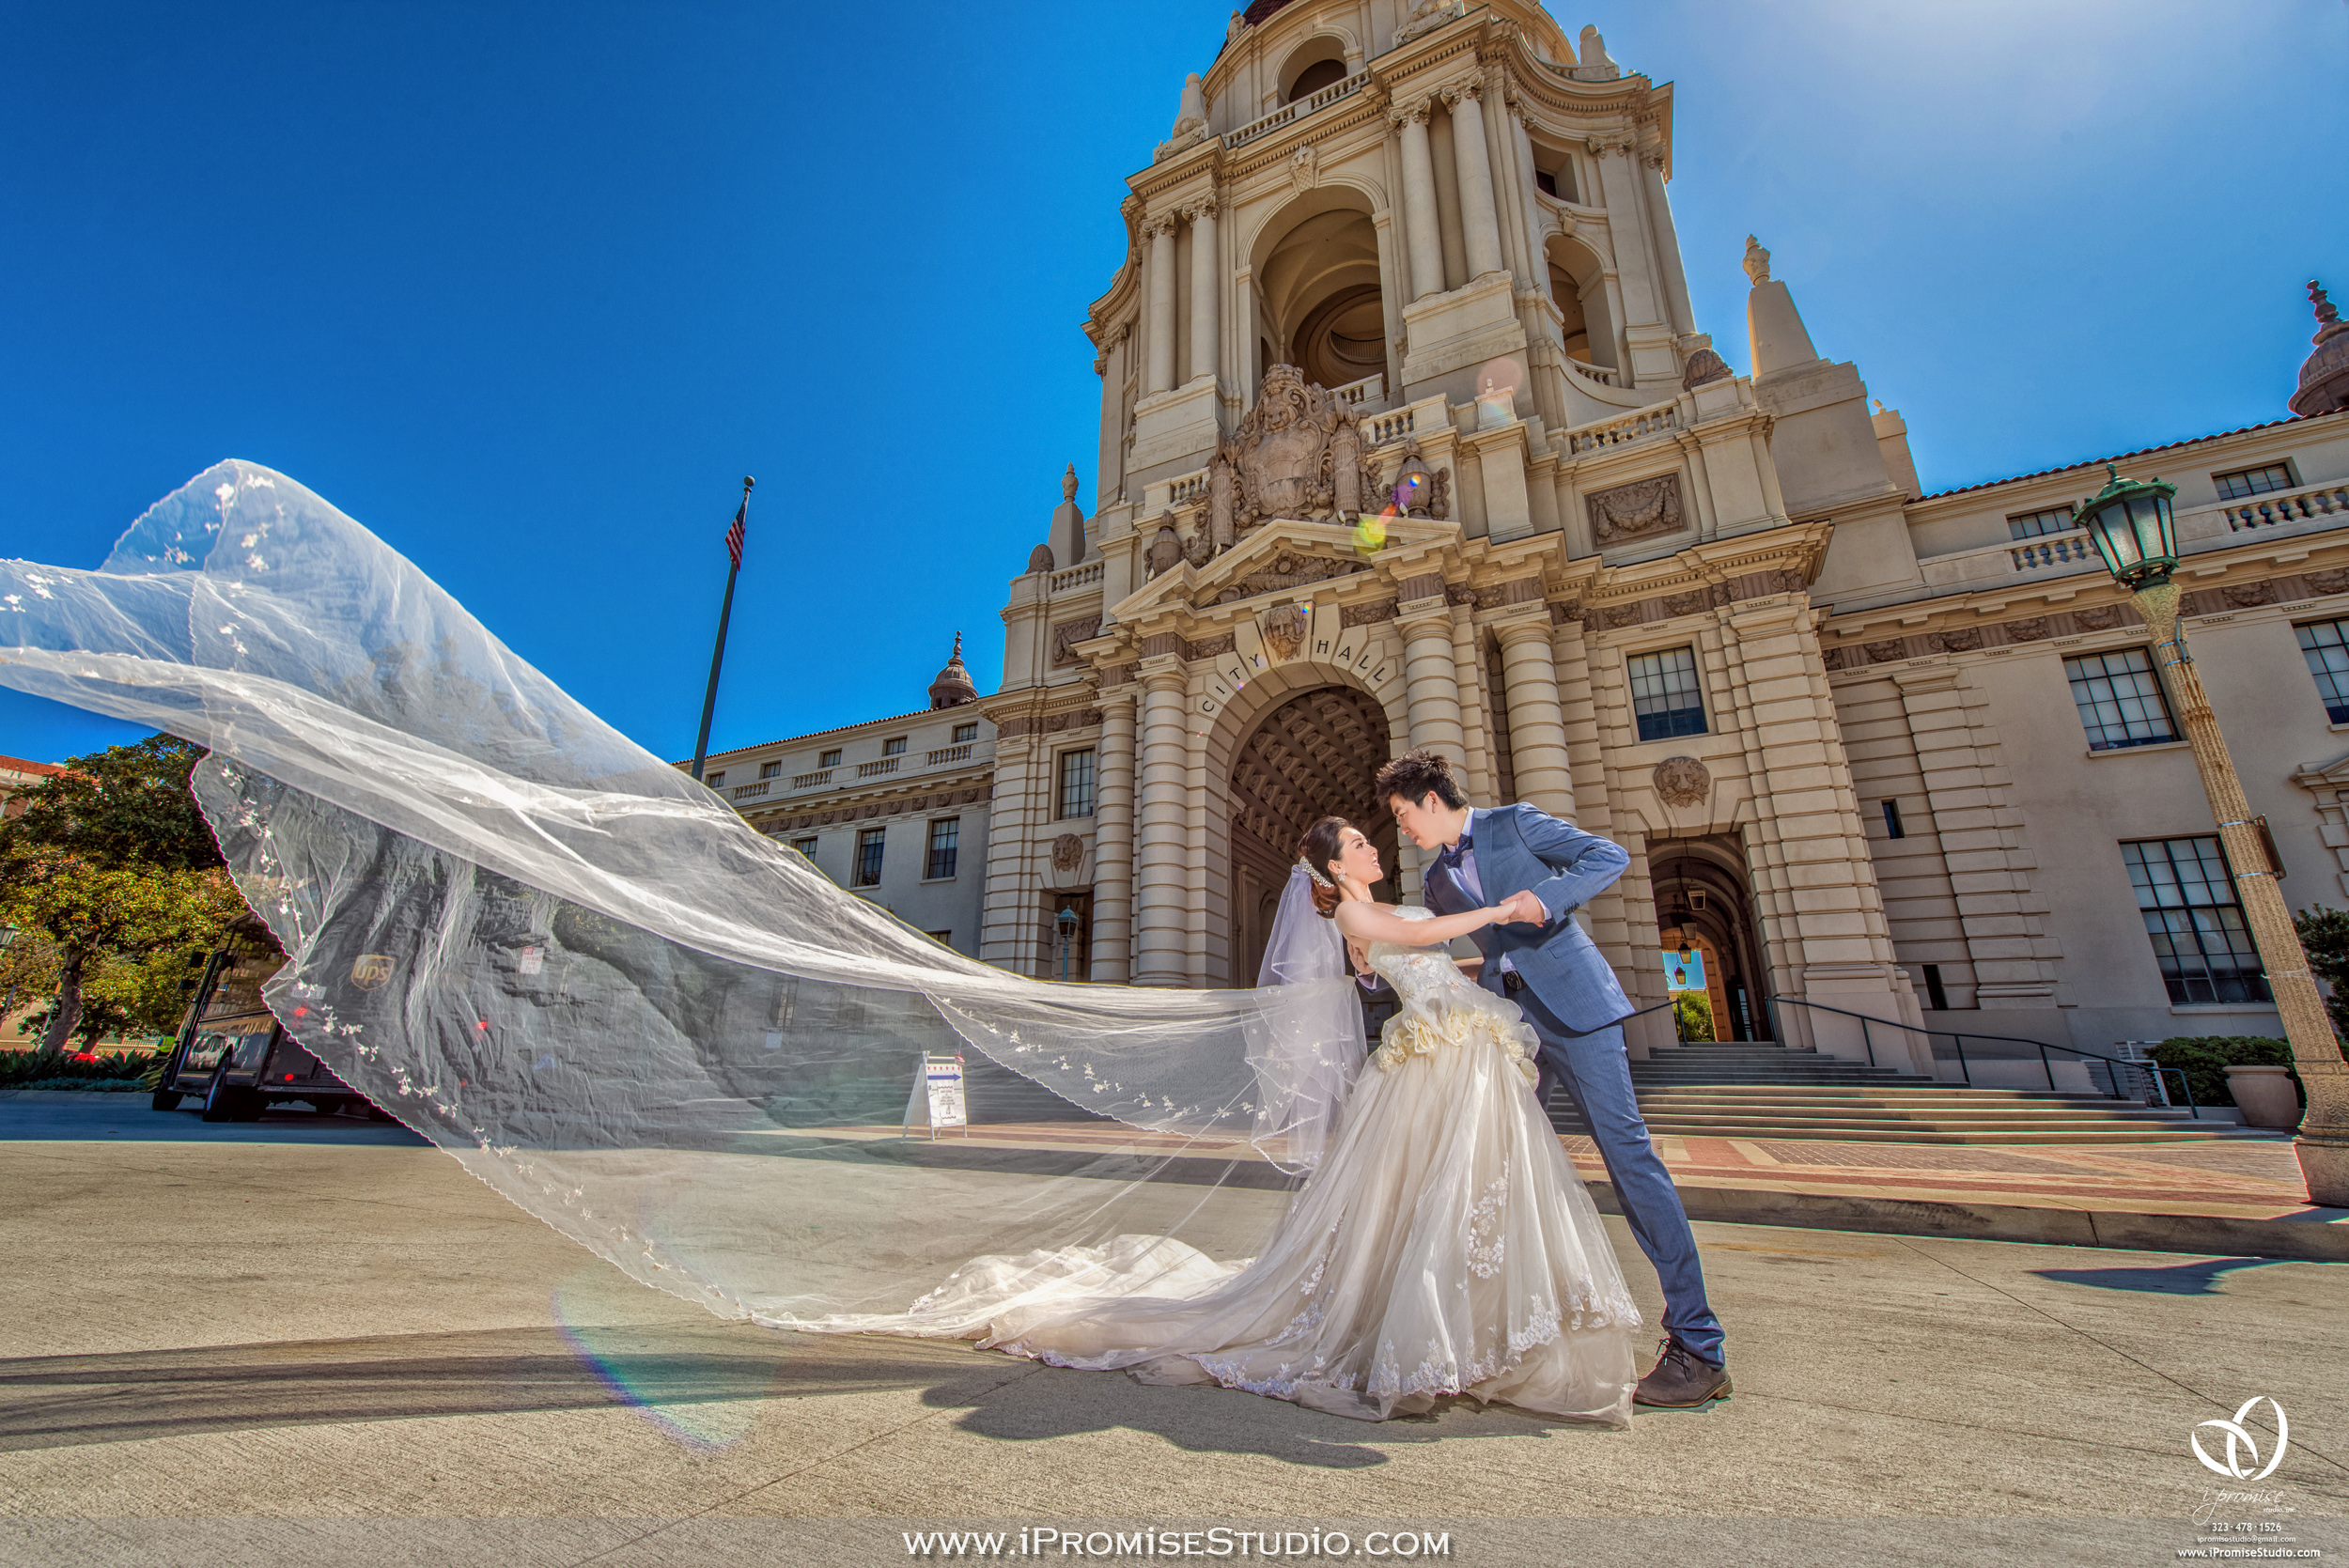 Pasadena Cityhall engagement wedding 17.JPG